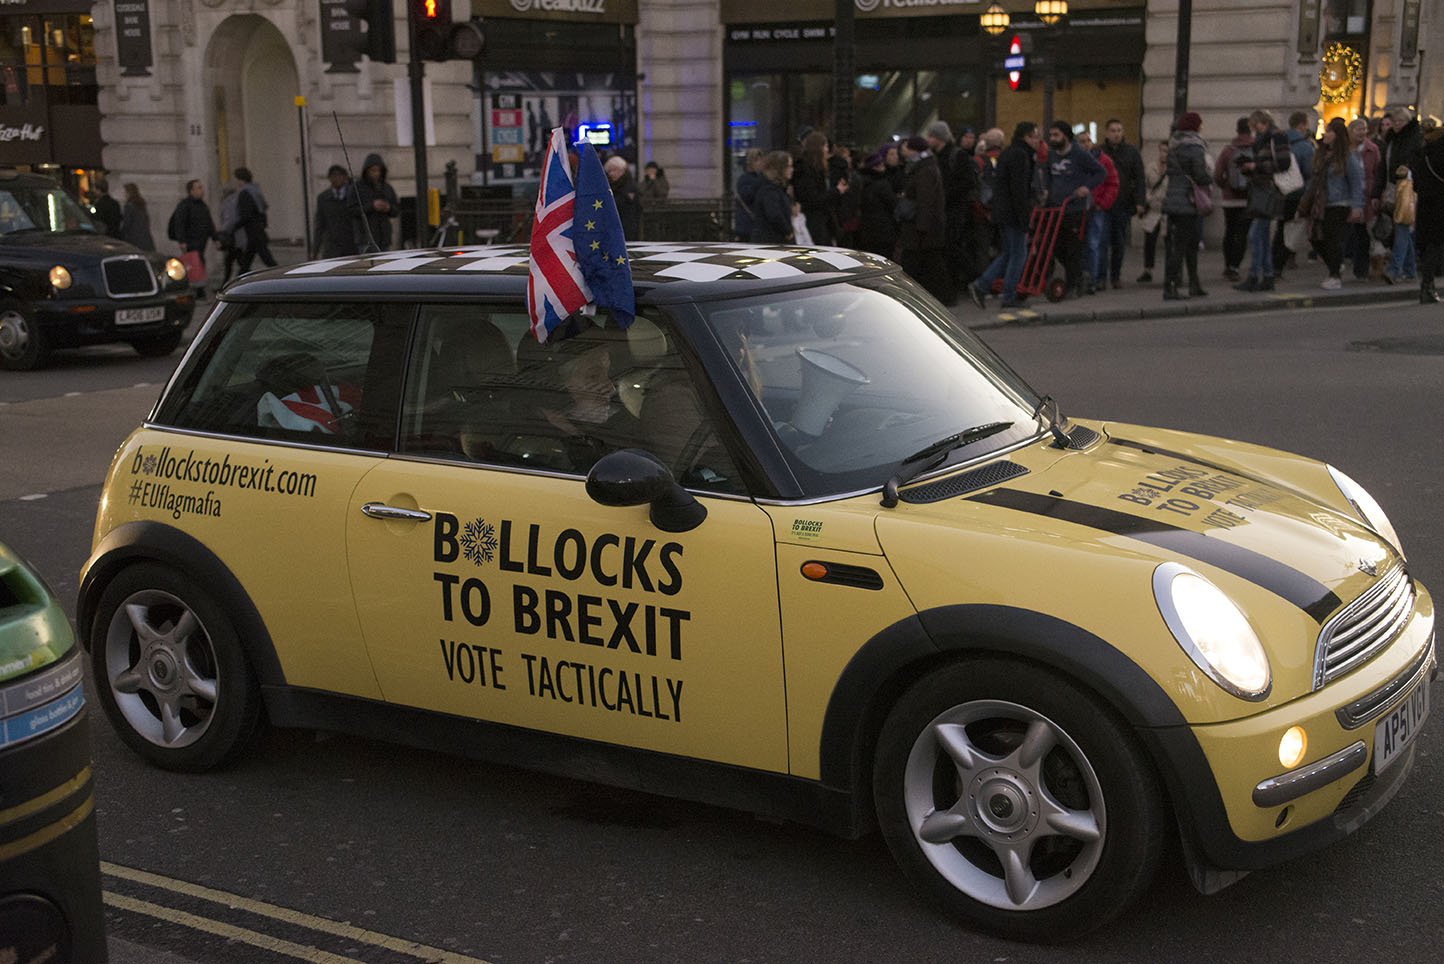 3 Dec 2019 - London, UK - Protest minis in a stunt organised and crowdfunded by anti-brexit campaigning group EU Flag Mafia.